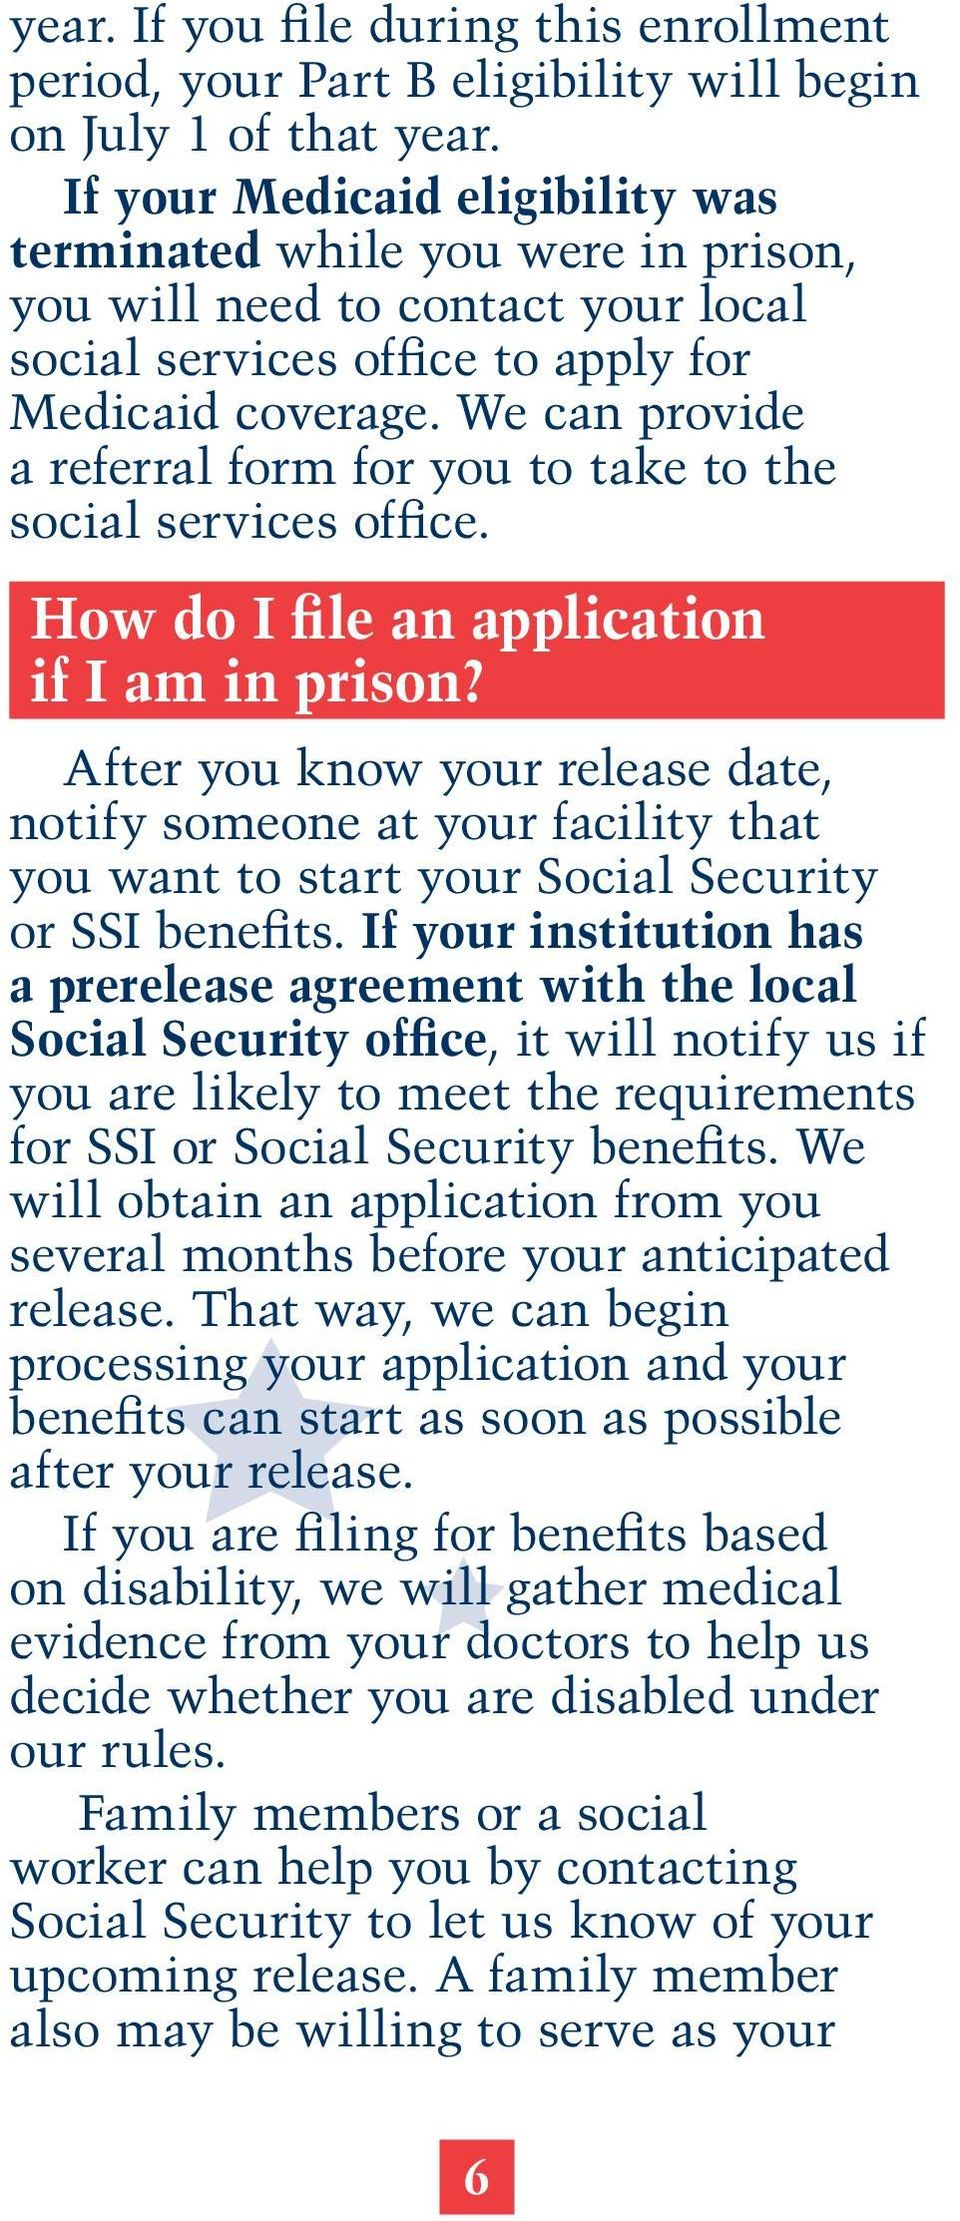 We can provide a referral form for you to take to the social services office. How do I file an application if I am in prison?